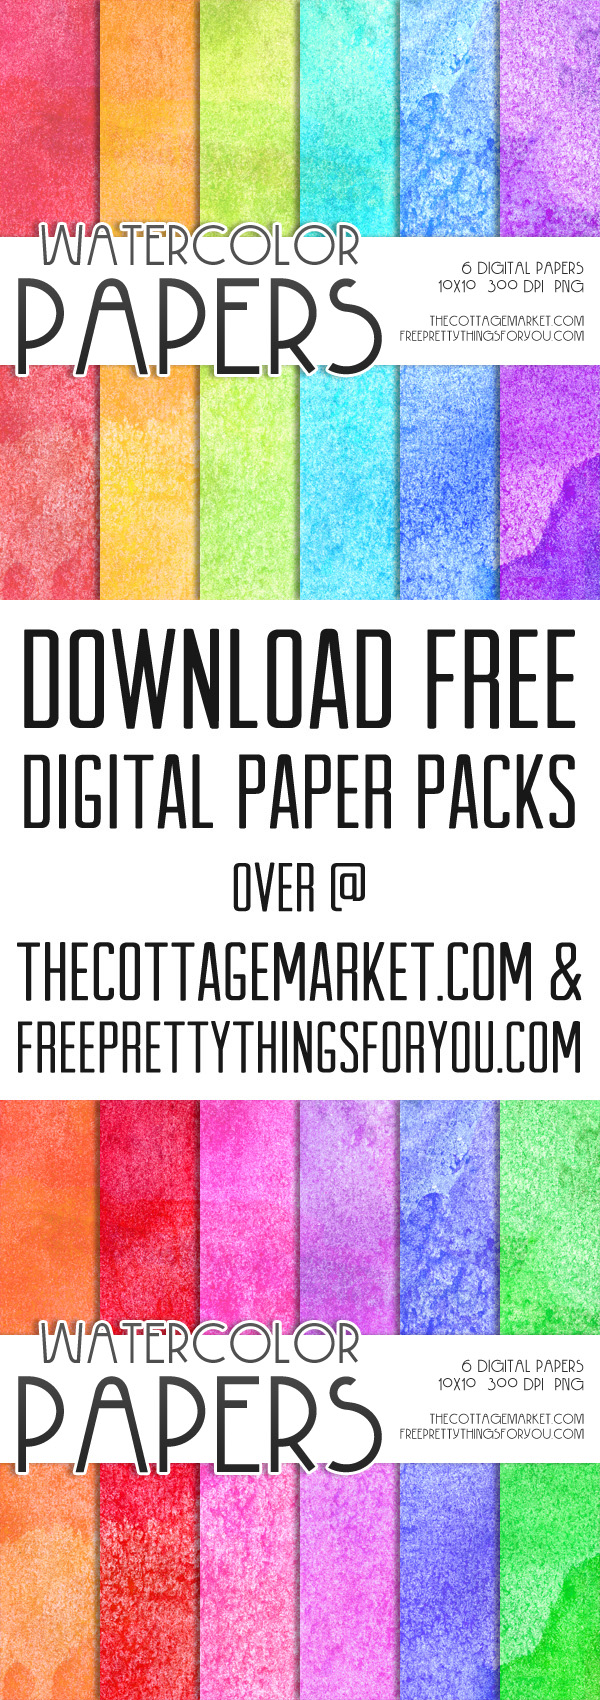 Free Watercolor Digital Paper Pack 1 The Cottage Market